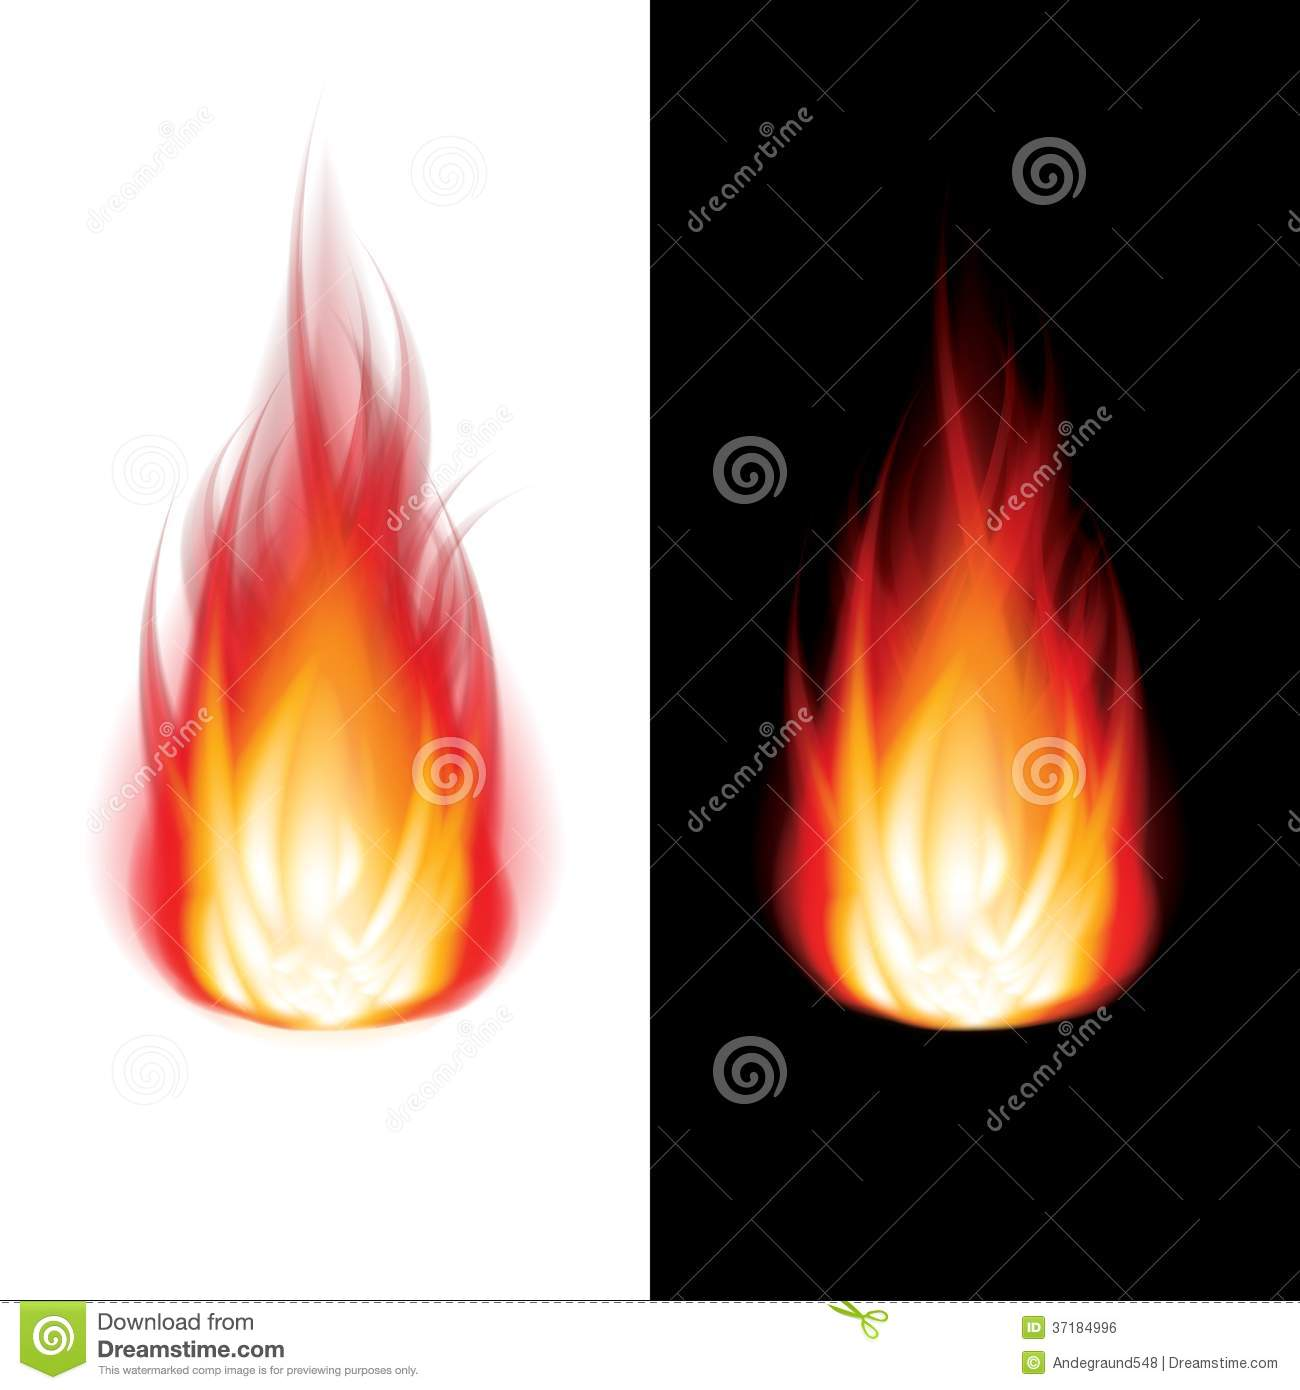 fire black and white background vector stock vector illustration of fireplace blaze 37184996 dreamstime com